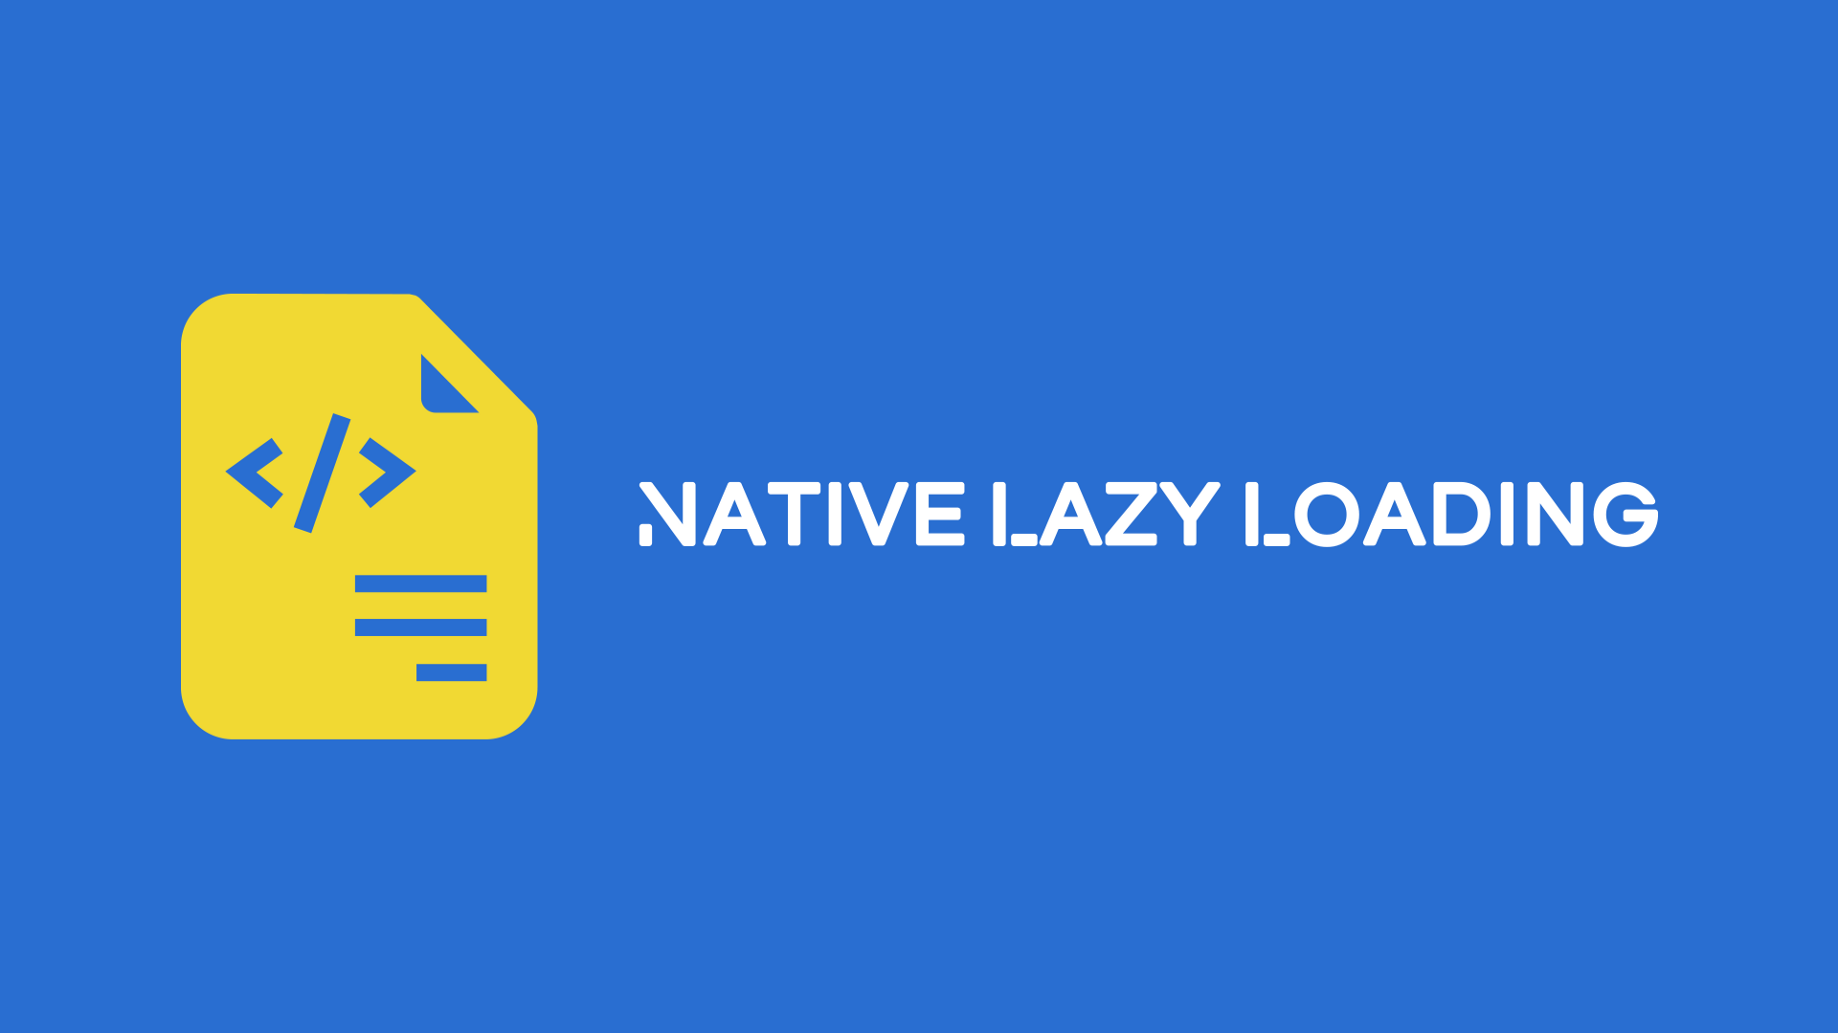 Native lazy loading of images and iframes - Grigor Khachatryan - Medium